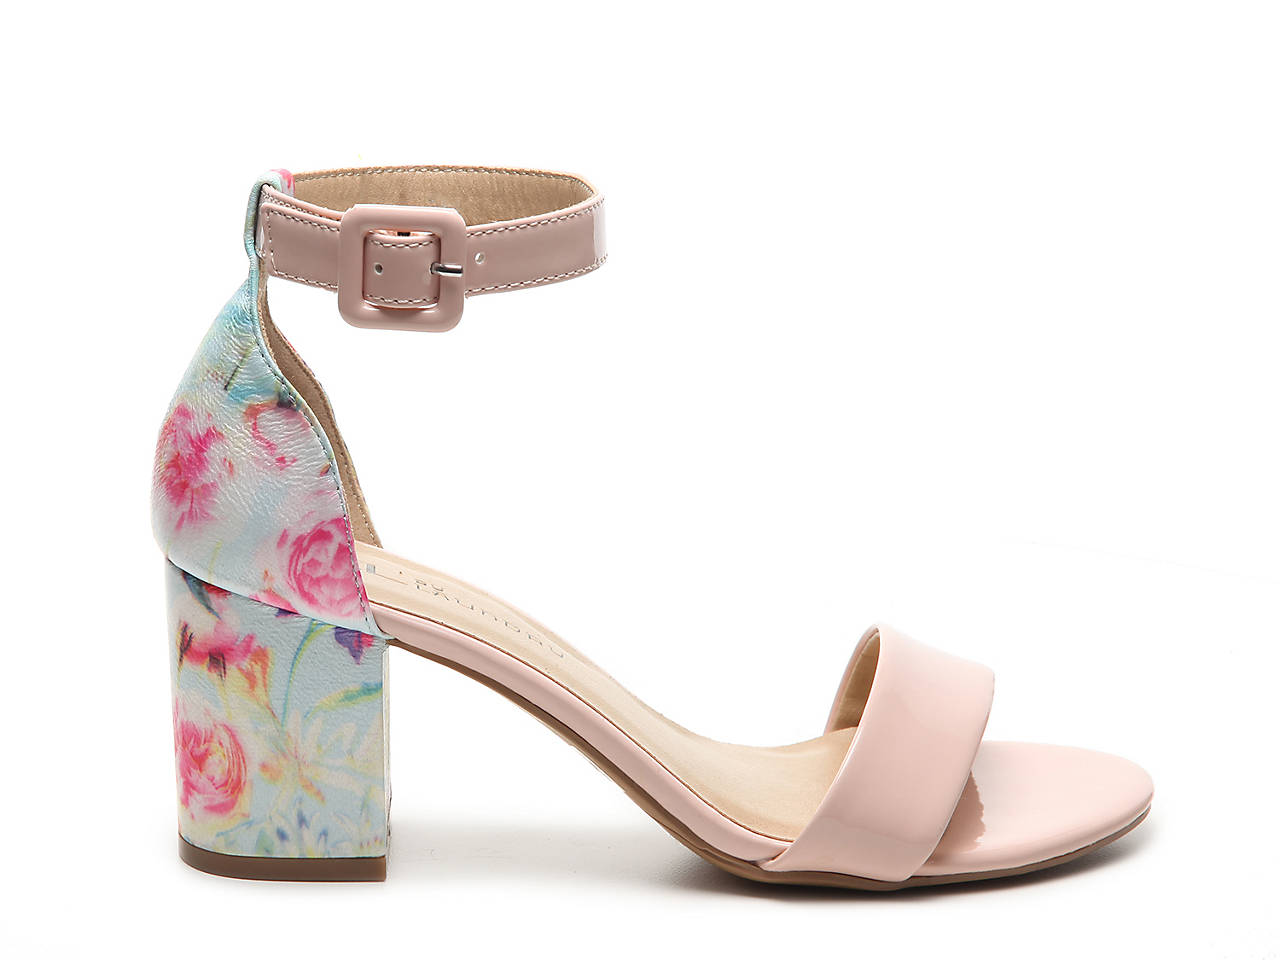 Jody Floral Women's Sandal Laundry ShoesDsw Cl By H2ED9I